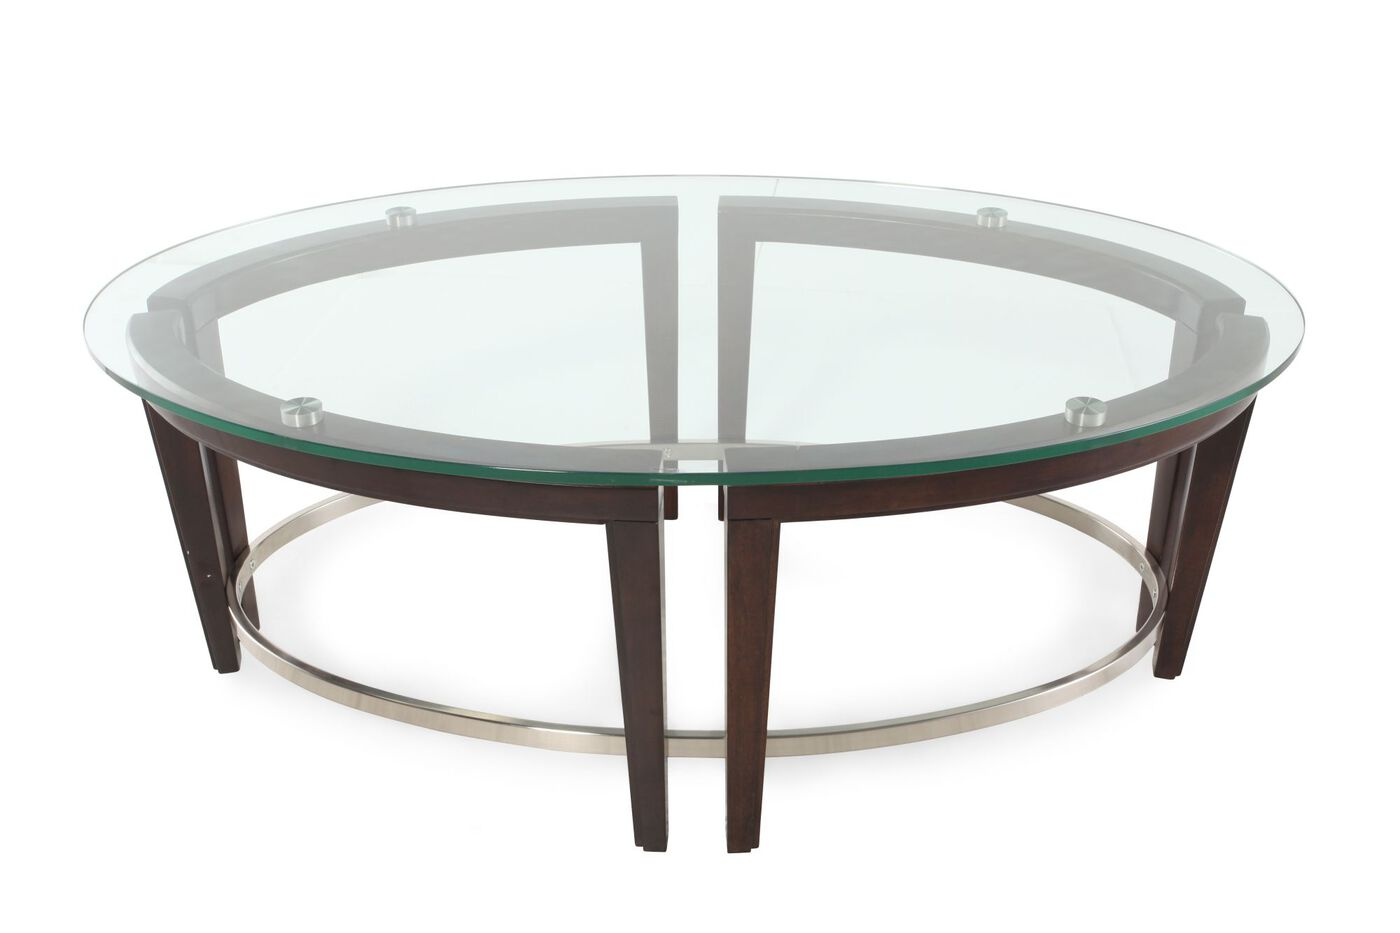 Magnussen home carmen oval cocktail table mathis Oval cocktail table living room furniture